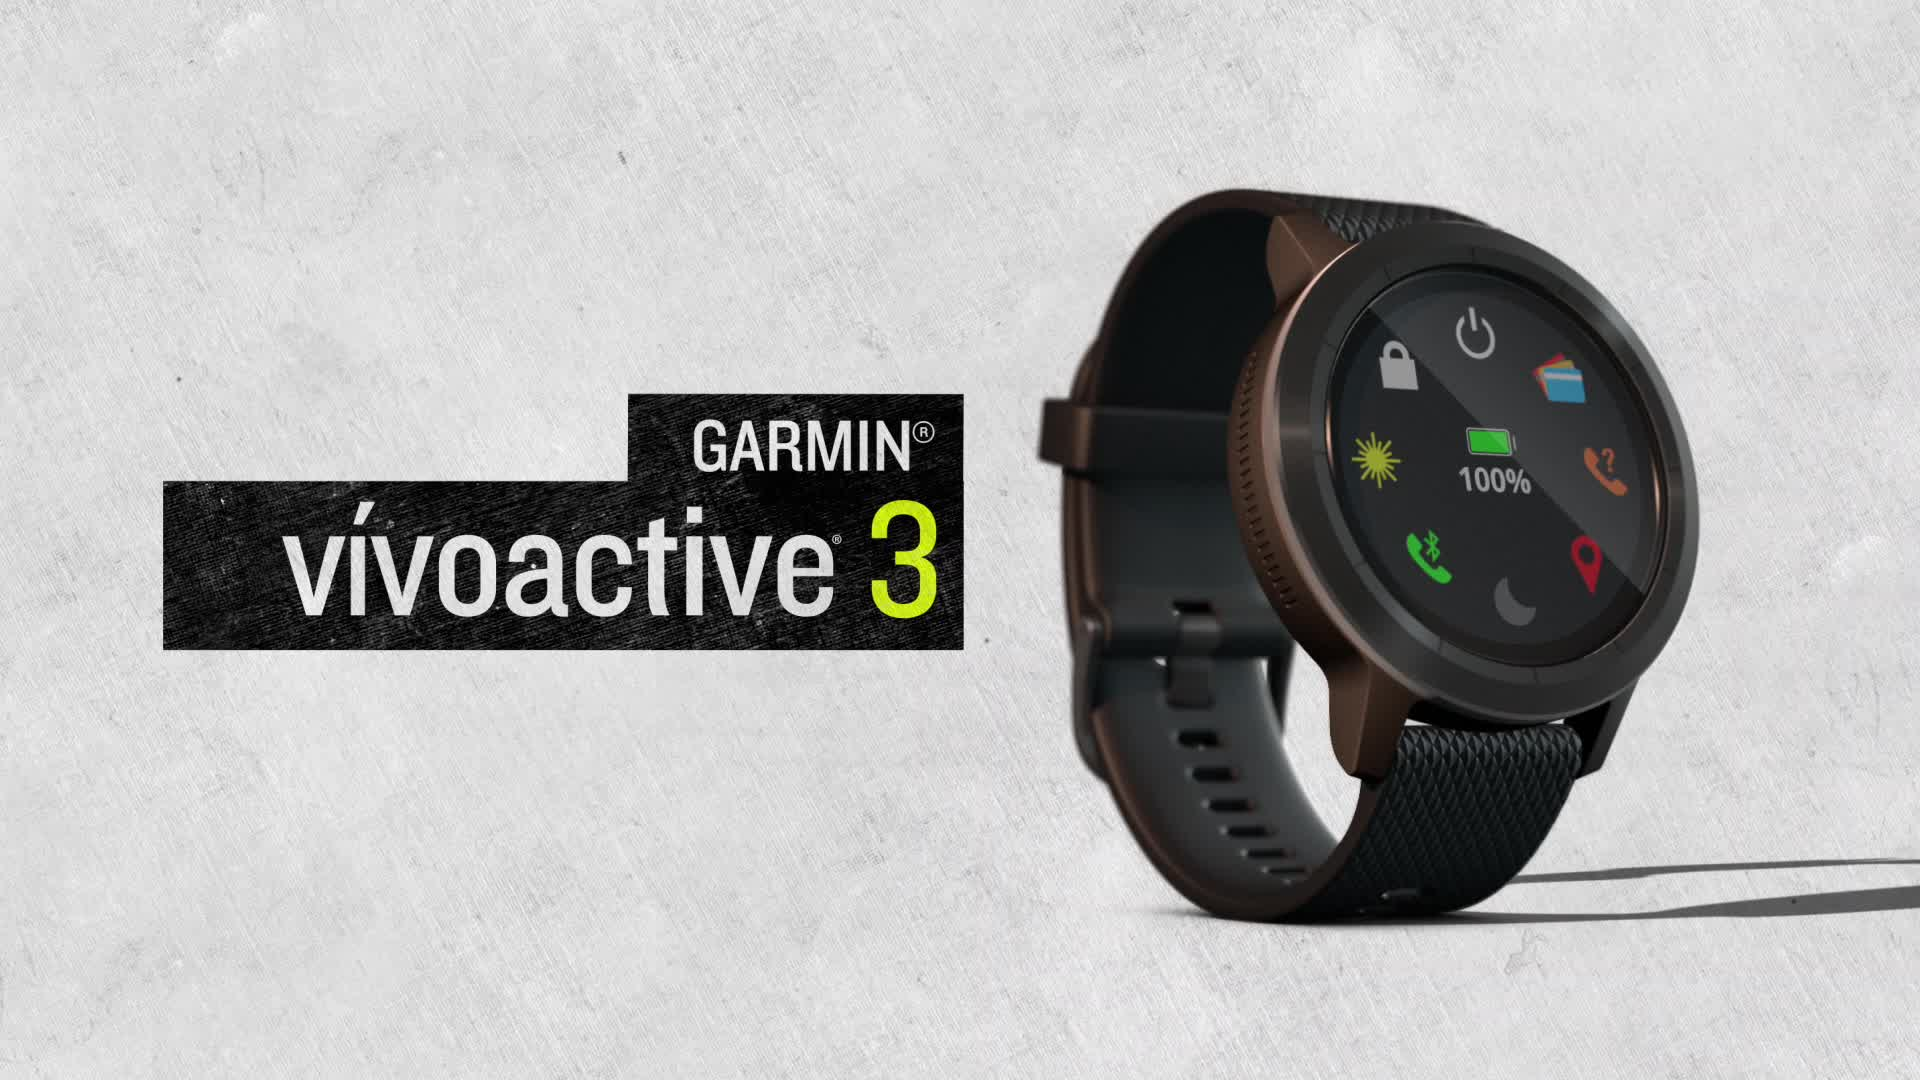 30 sur montre connect e de sport garmin vivoactive 3 avec gps et cardio poignet grise avec. Black Bedroom Furniture Sets. Home Design Ideas